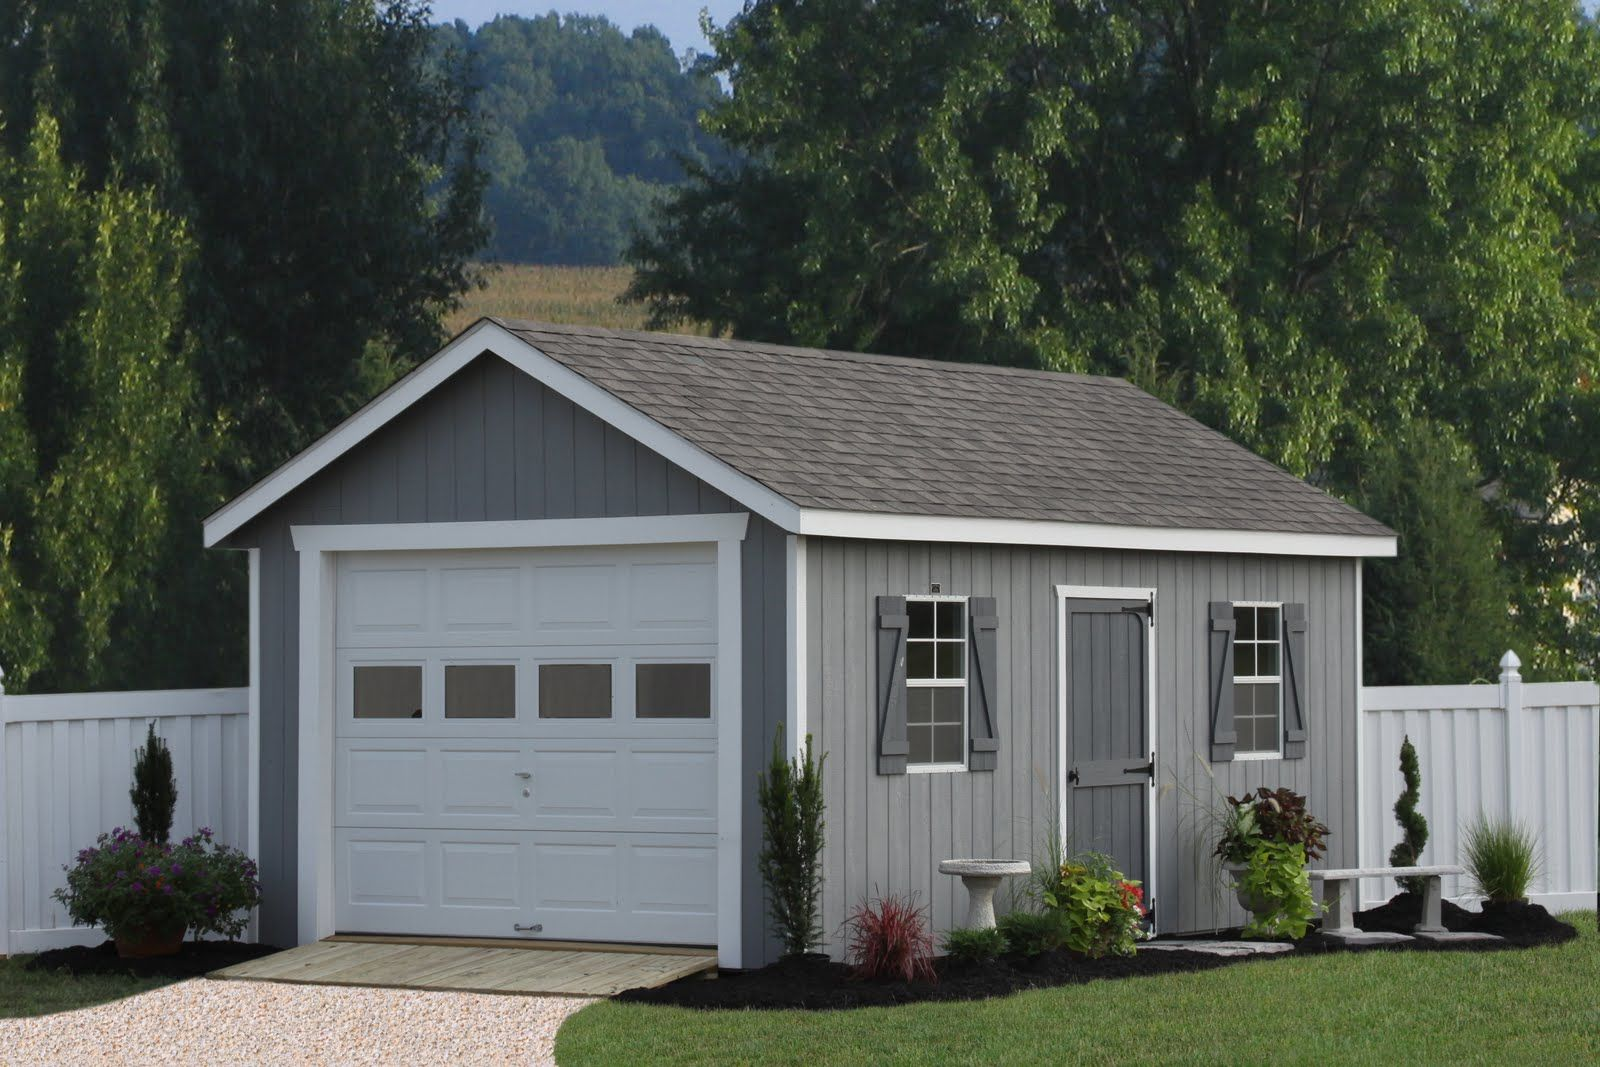 Add on garage plans 12x20 classic one car garage for Modular carriage house garage